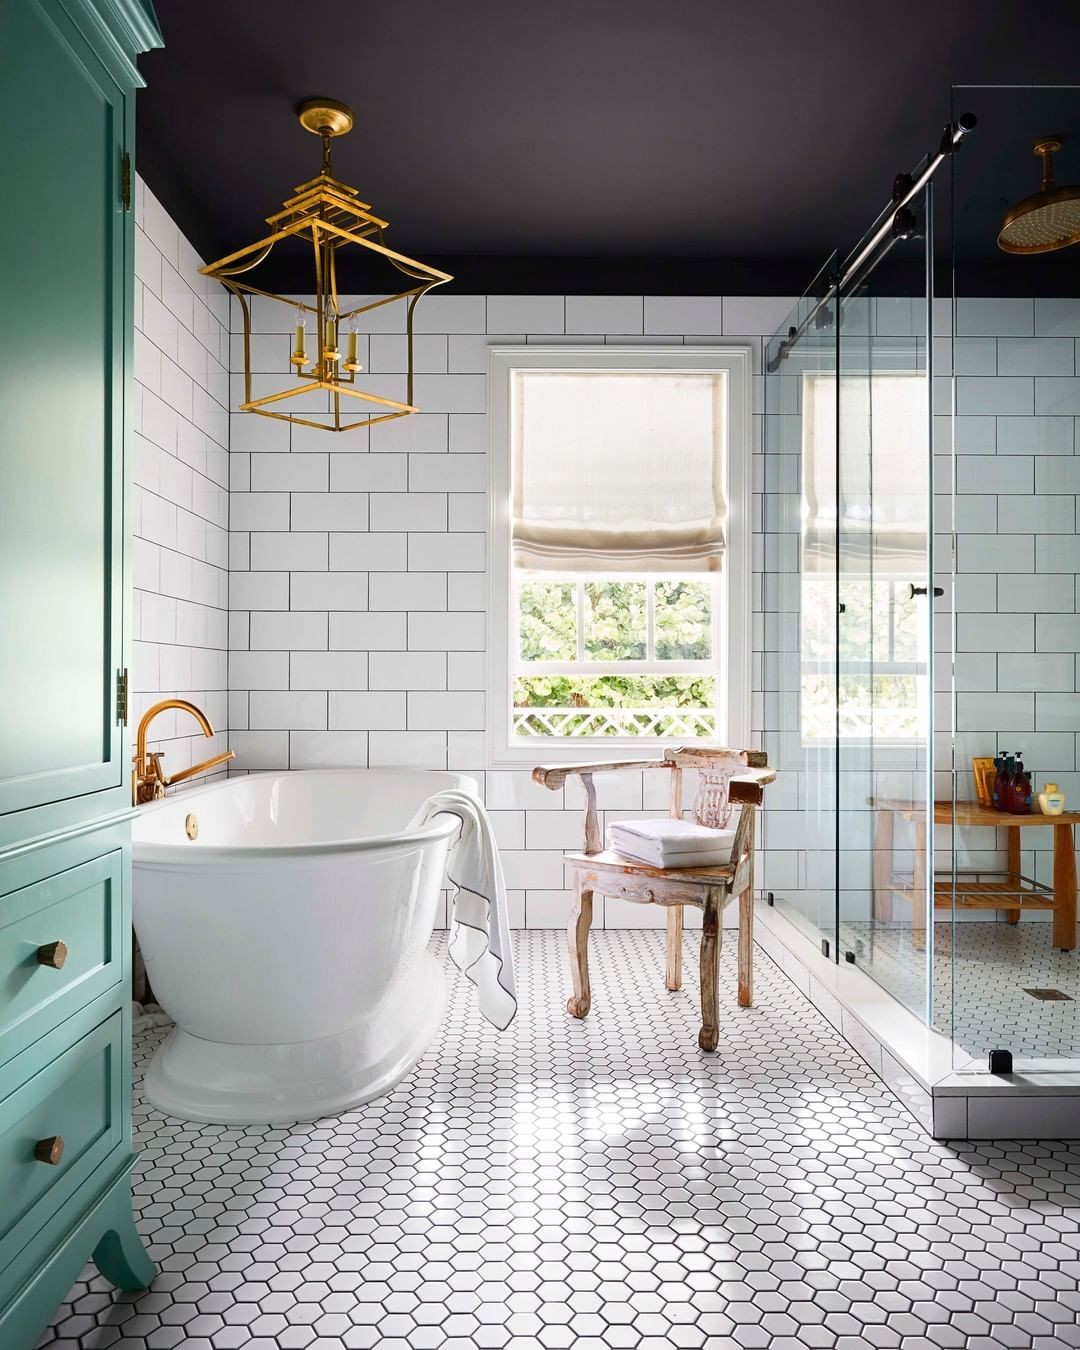 House Beautiful On Instagram If Staying In And Taking A Bath On A Saturday Night Is Wrong I Don T Want In 2020 Bathroom Renovation Remodeling Renovation Renovations